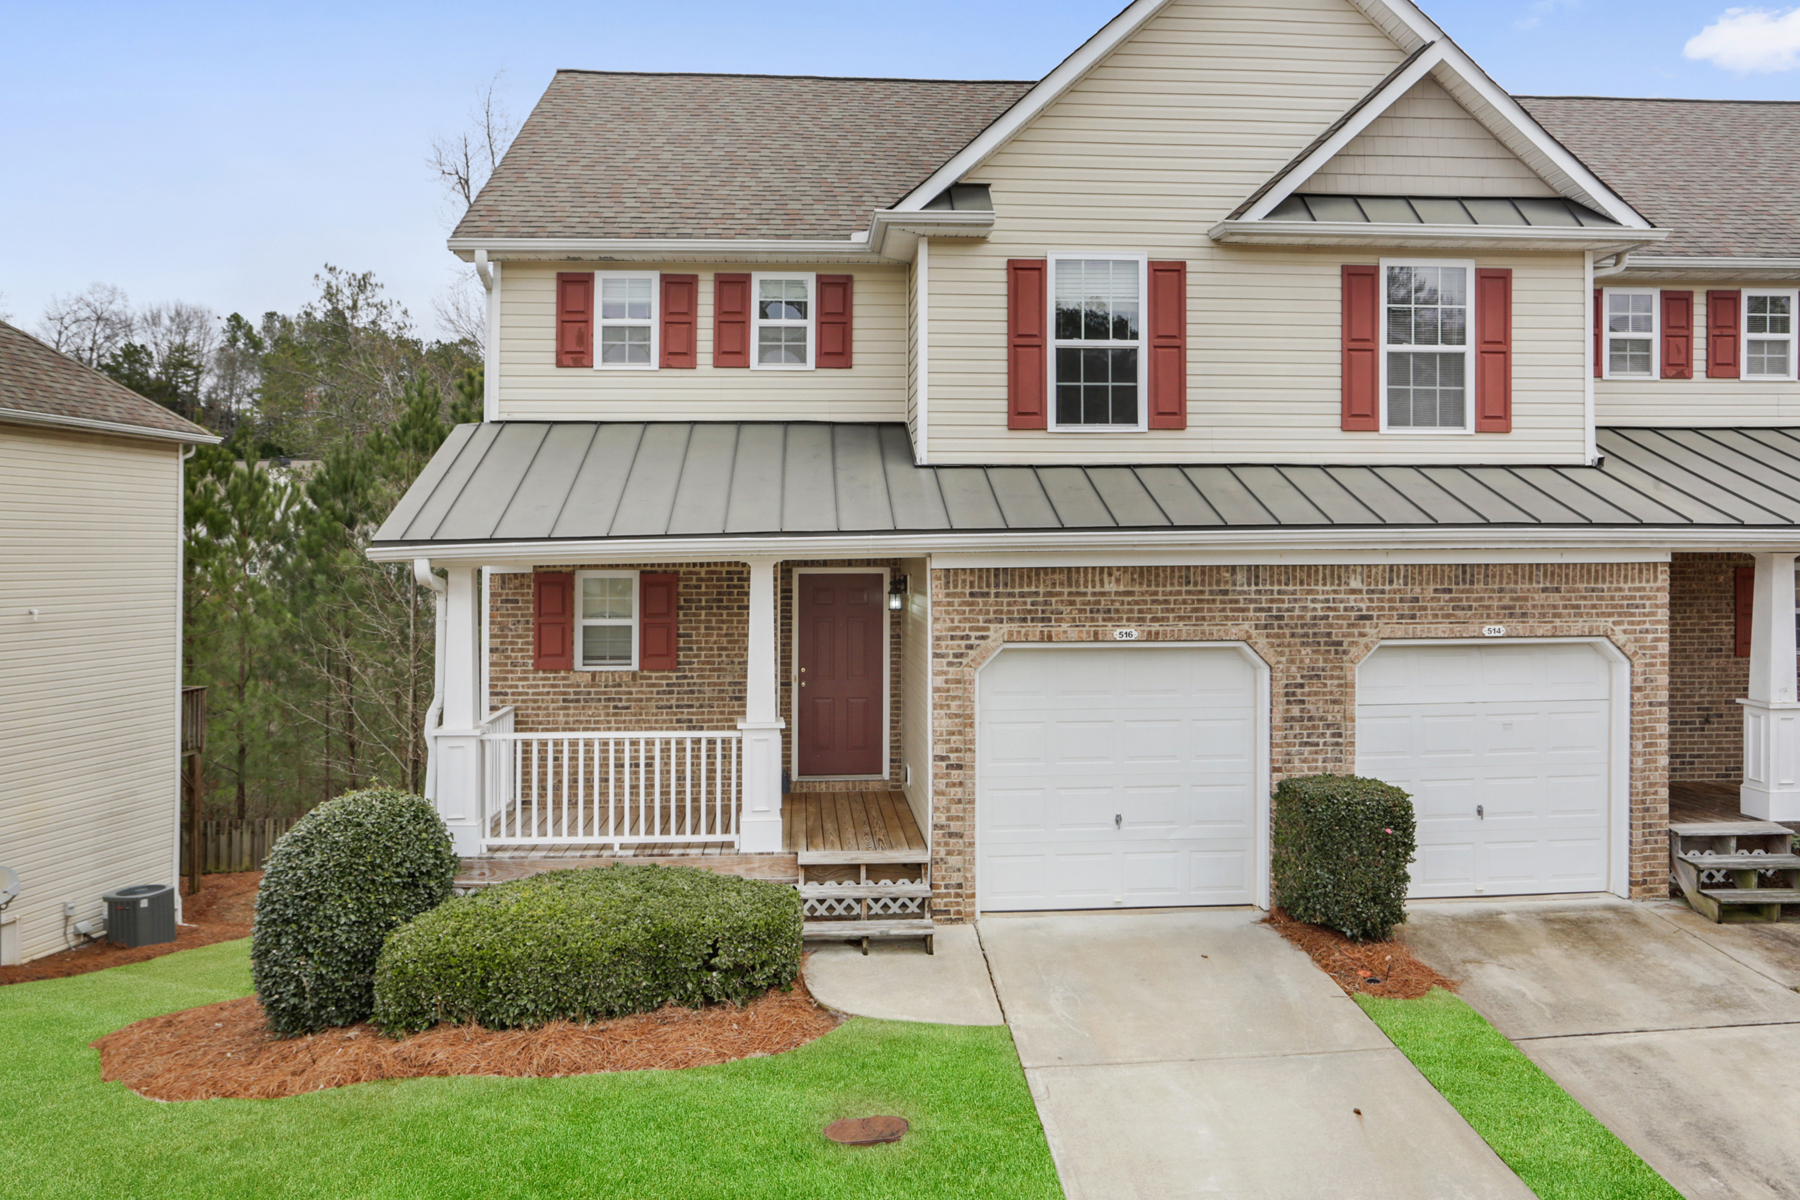 Townhouse for Sale at Beautiful Starter Townhome 516 Fox Creek Crossing Woodstock, Georgia 30188 United States